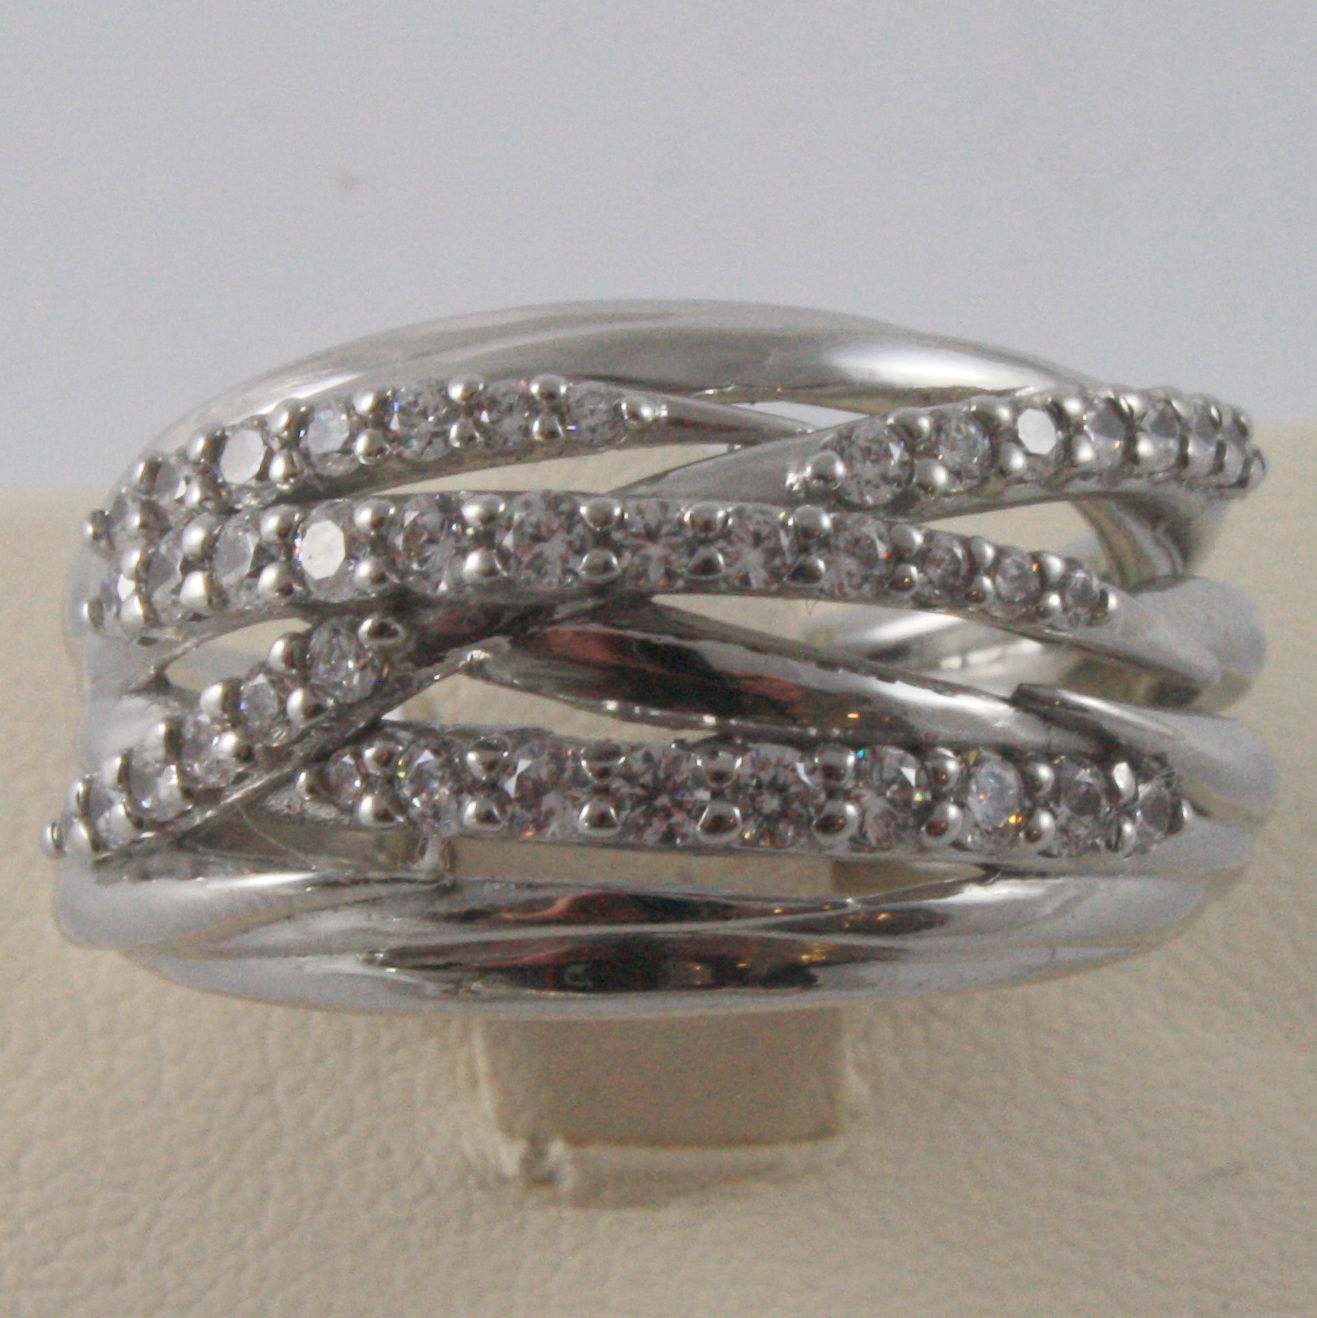 SOLID 925 SILVER BAND RING BY NANIS, MULTIWIRES, WOVEN, ZIRCONIA, MADE IN ITAL